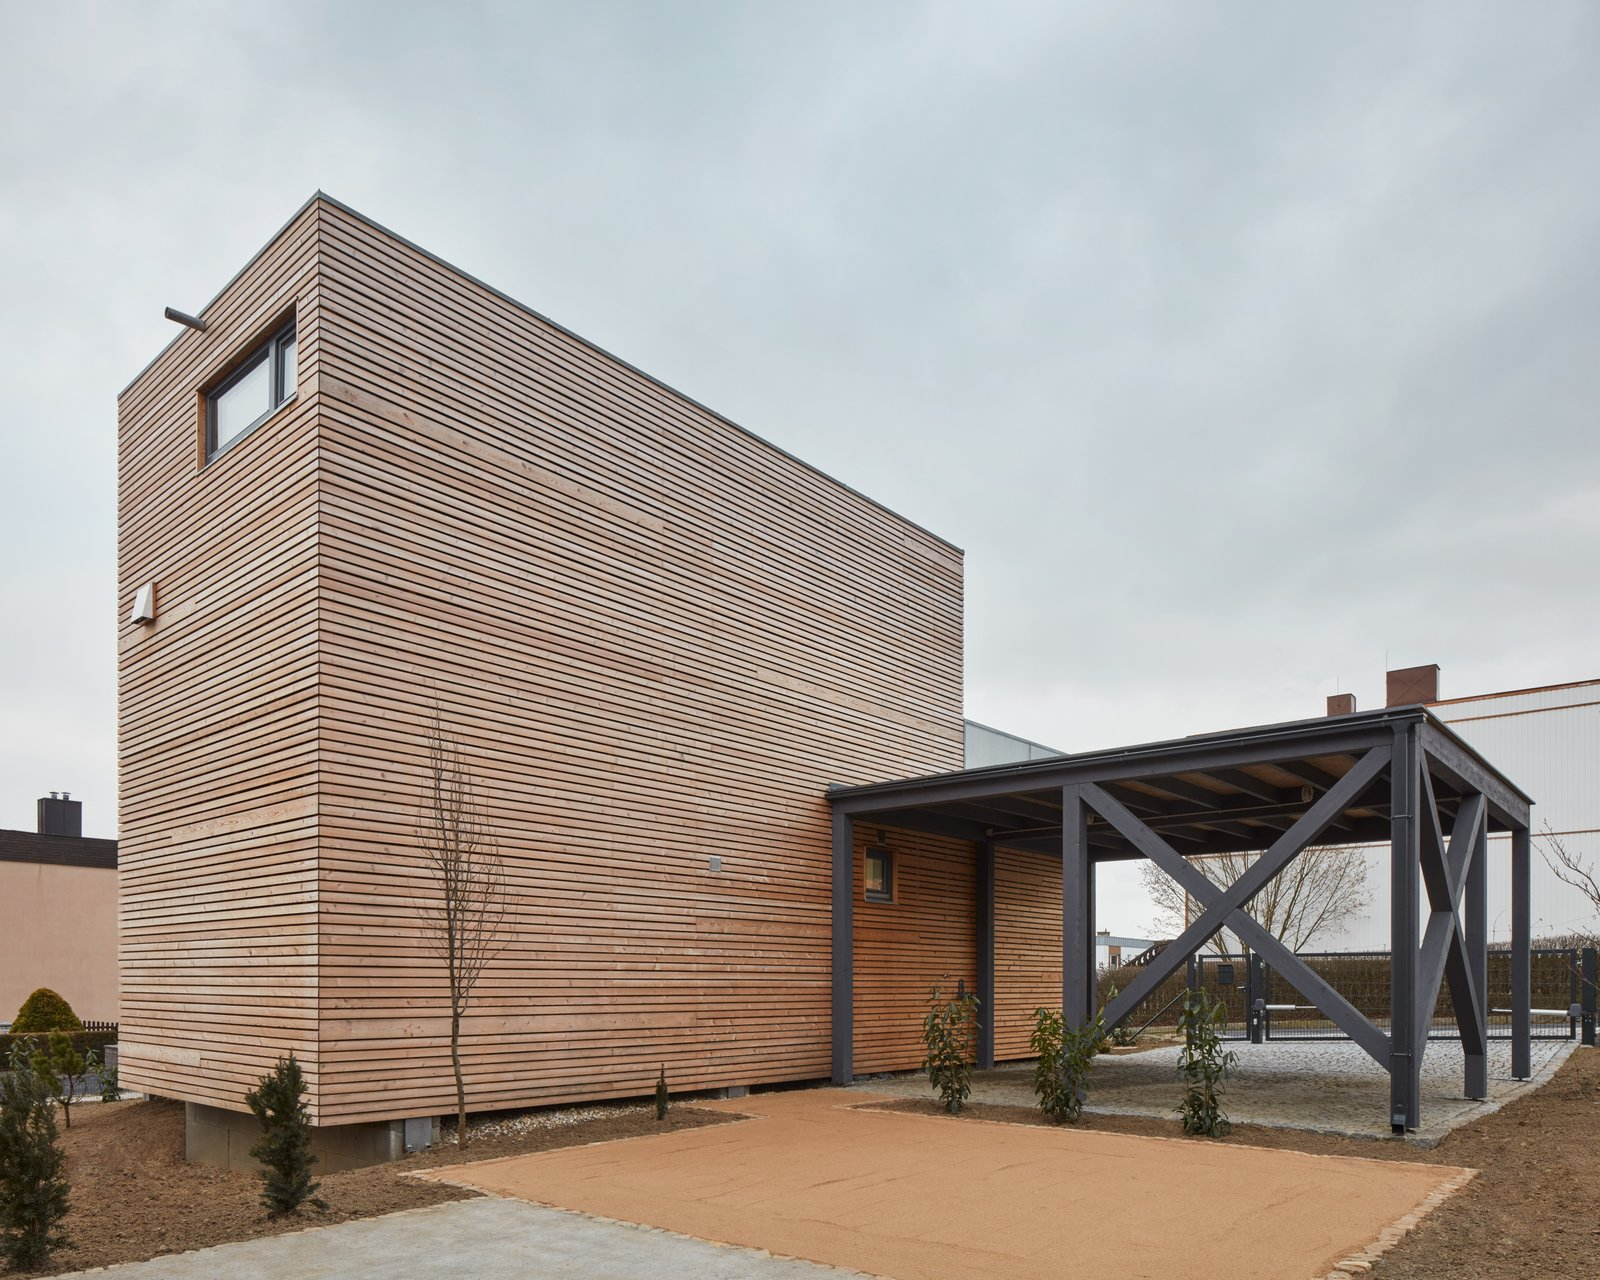 Exterior, Metal Siding Material, House Building Type, Wood Siding Material, and Flat RoofLine  Freedomek No.061 by BoysPlayNice Photography & Concept